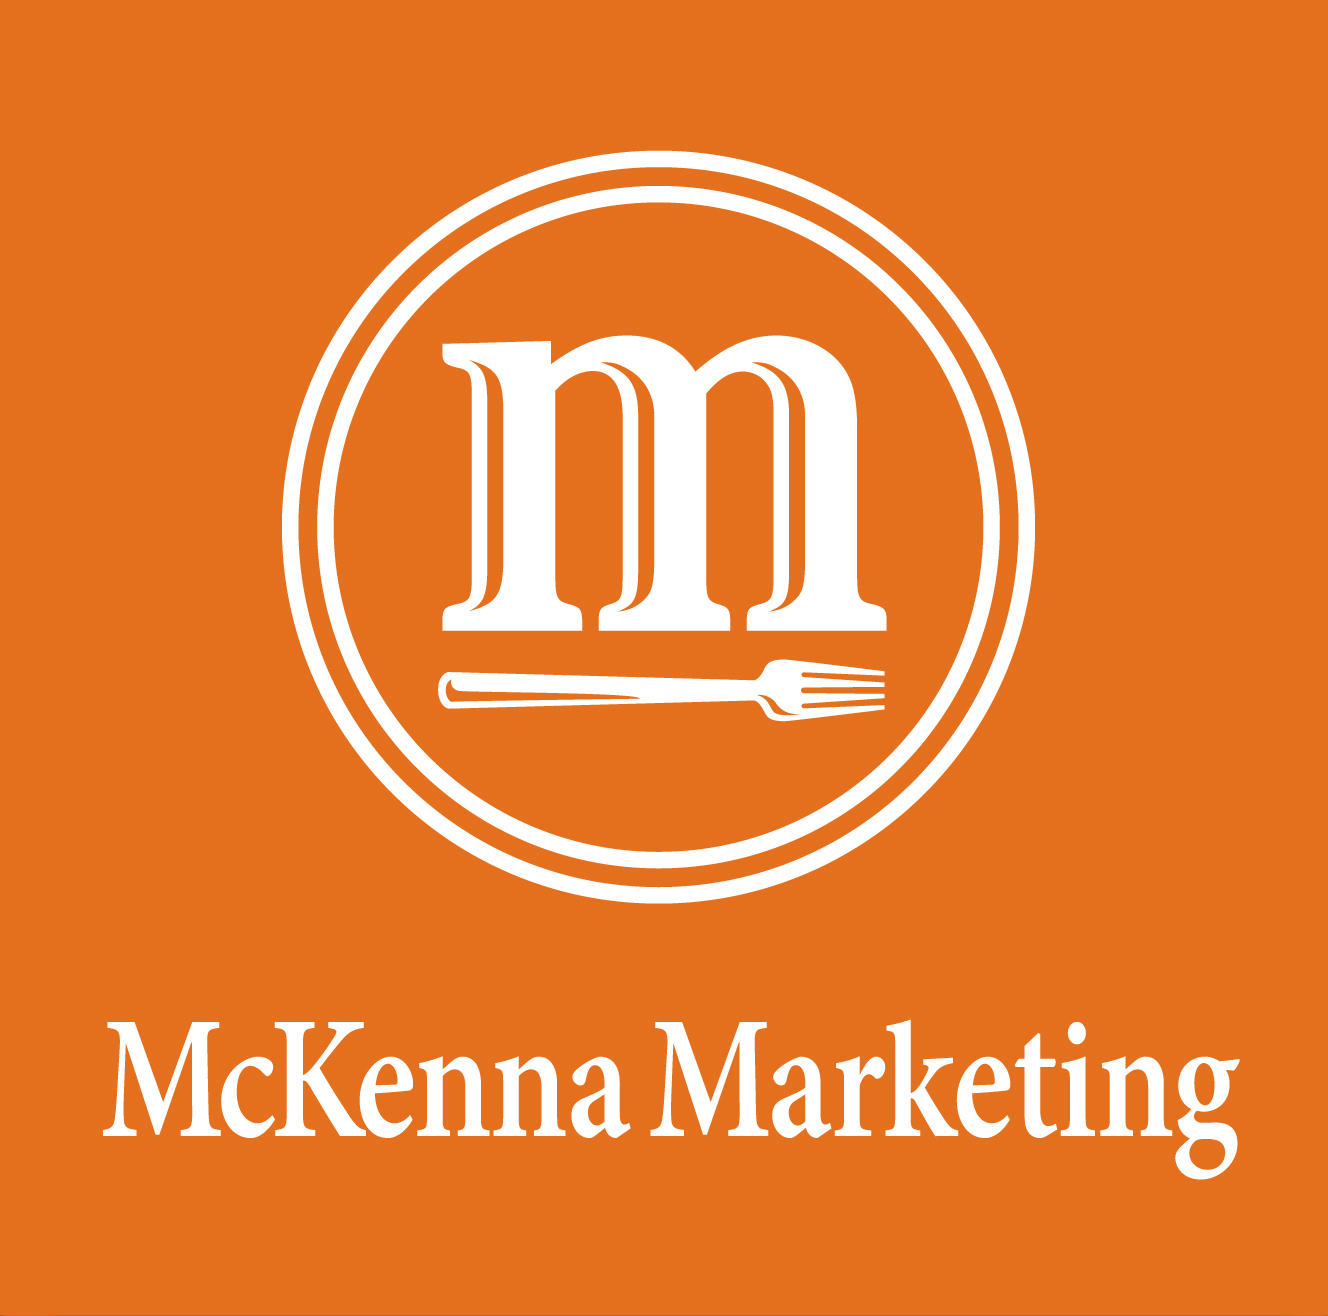 McKenna Marketing